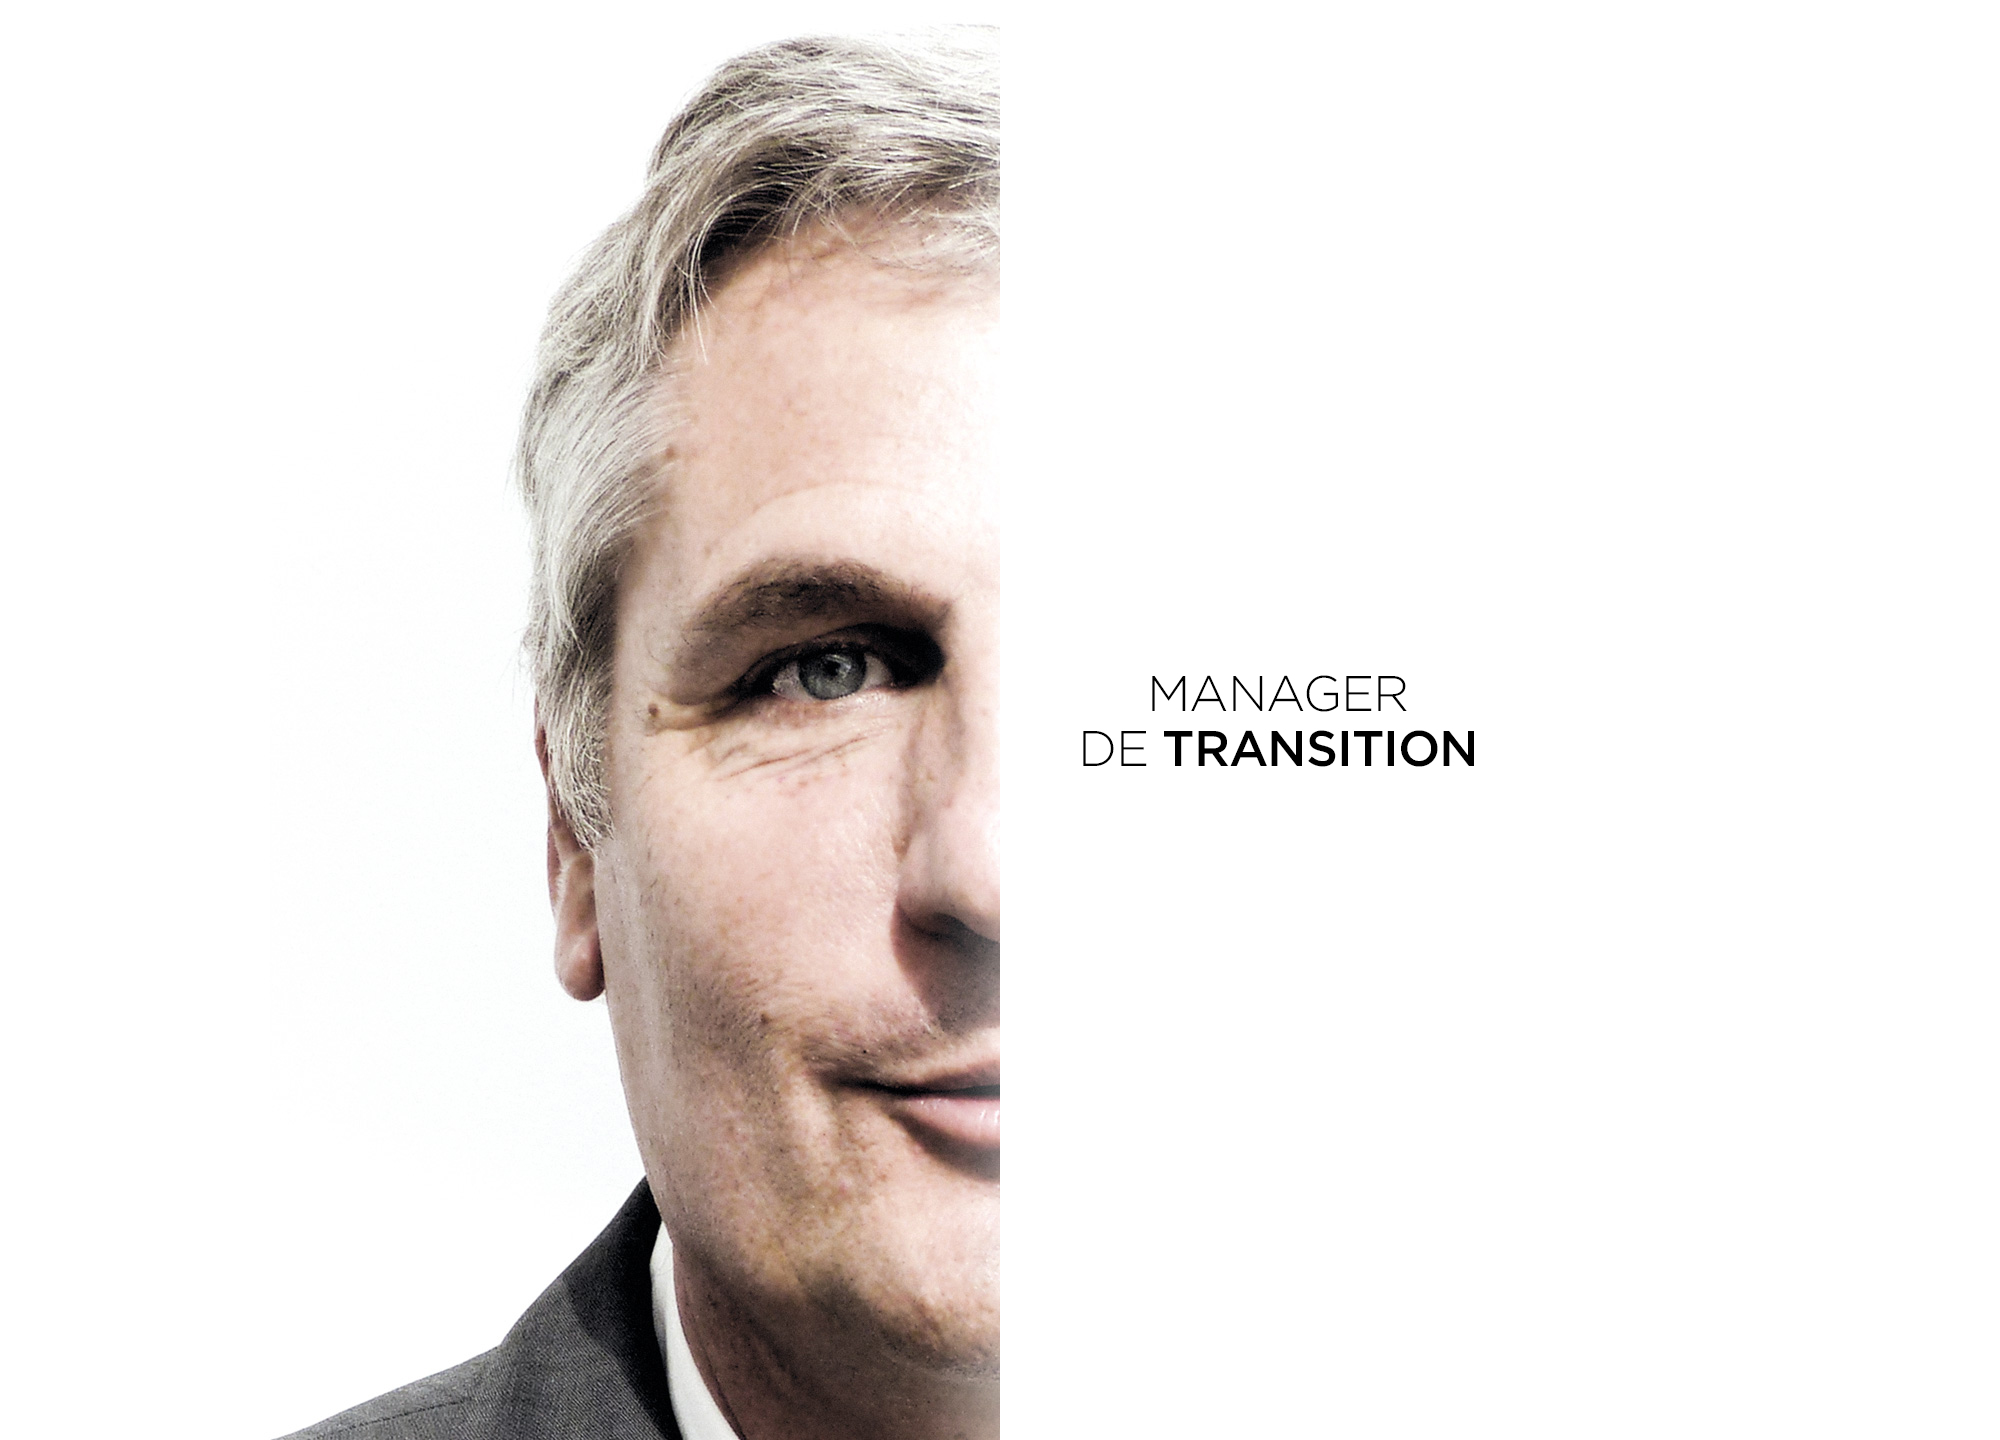 ALTERIUS - FREDERIC DAVID - MANAGER DE TRANSITION